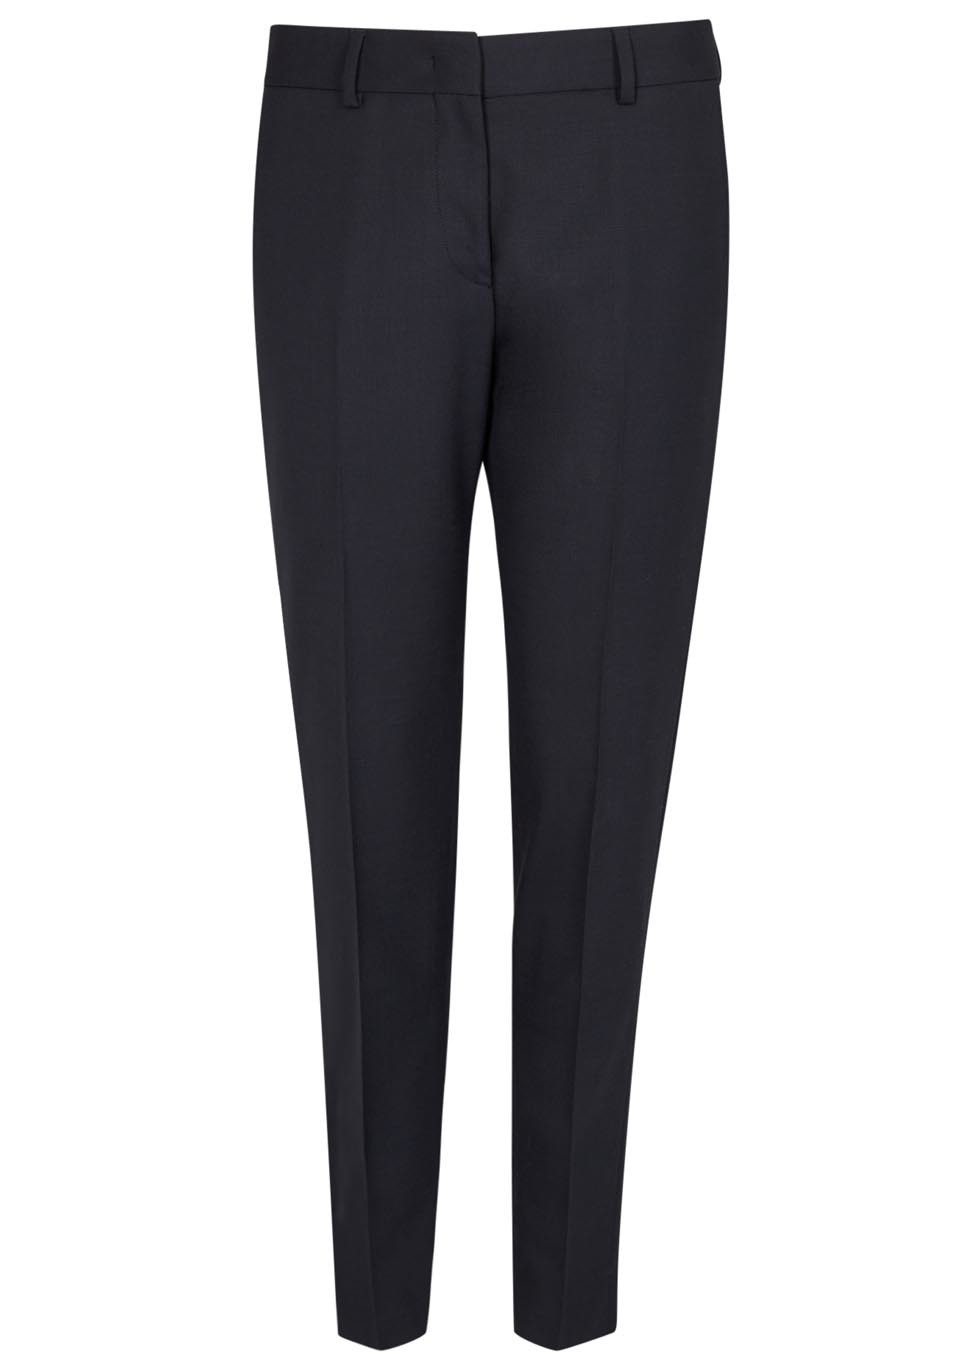 Navy Cropped Wool Trousers - length: standard; pattern: plain; waist: mid/regular rise; predominant colour: navy; occasions: work; fibres: wool - stretch; waist detail: narrow waistband; fit: slim leg; pattern type: fabric; texture group: woven light midweight; style: standard; wardrobe: basic; season: a/w 2016